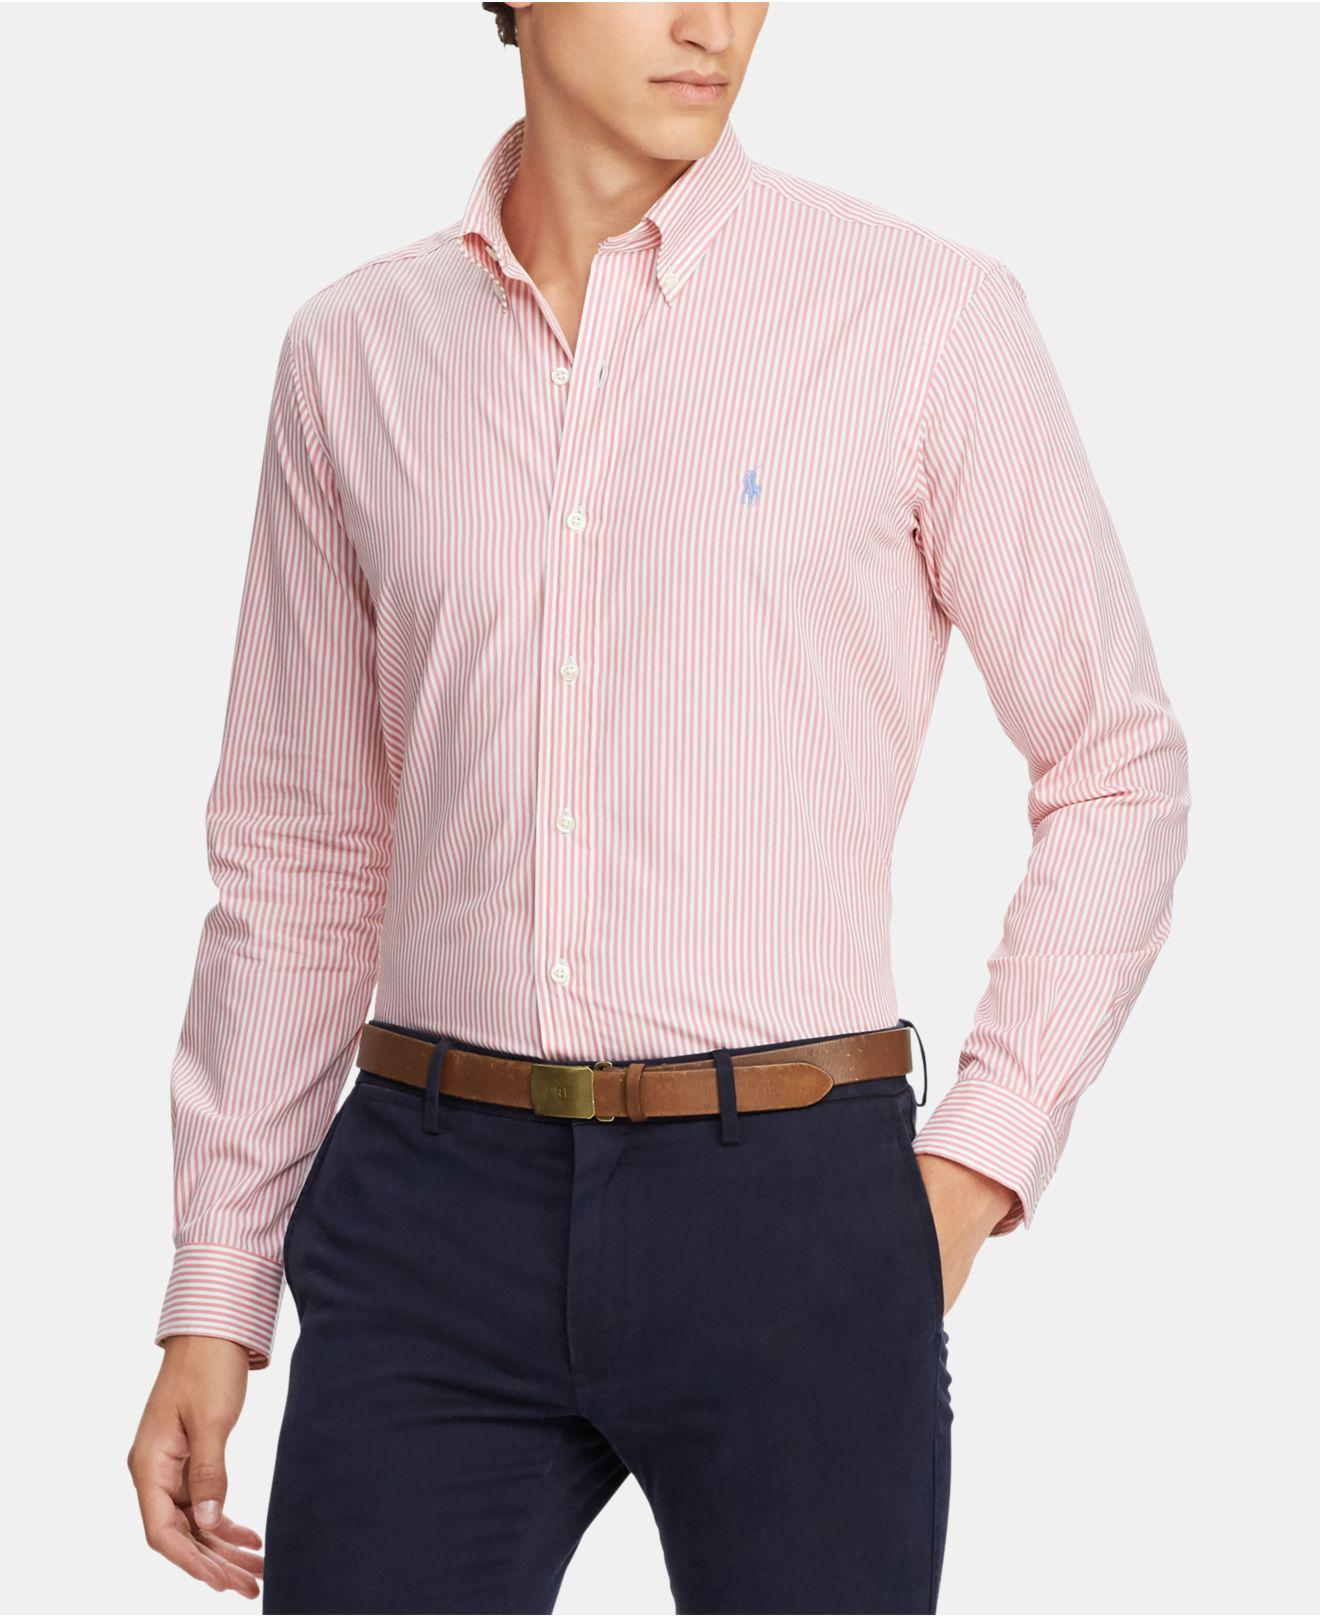 058eb69f1 Lyst - Polo Ralph Lauren Slim Fit Gingham Shirt in Pink for Men